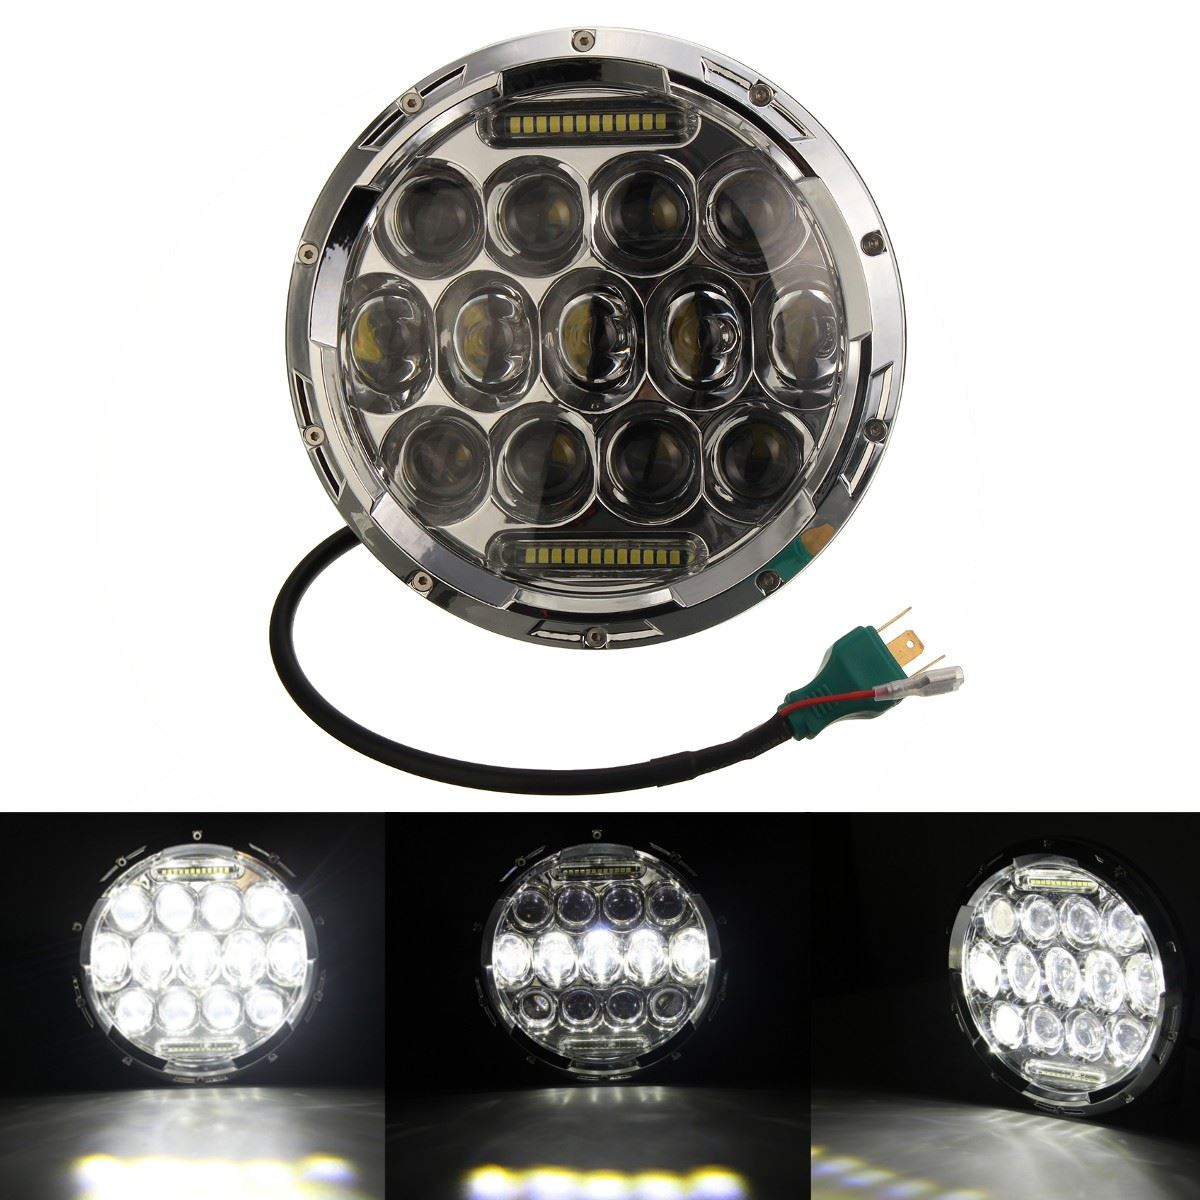 7 Inch Motorcycle Chrome Projector Hi Lo Beam LED Headlight for Harley